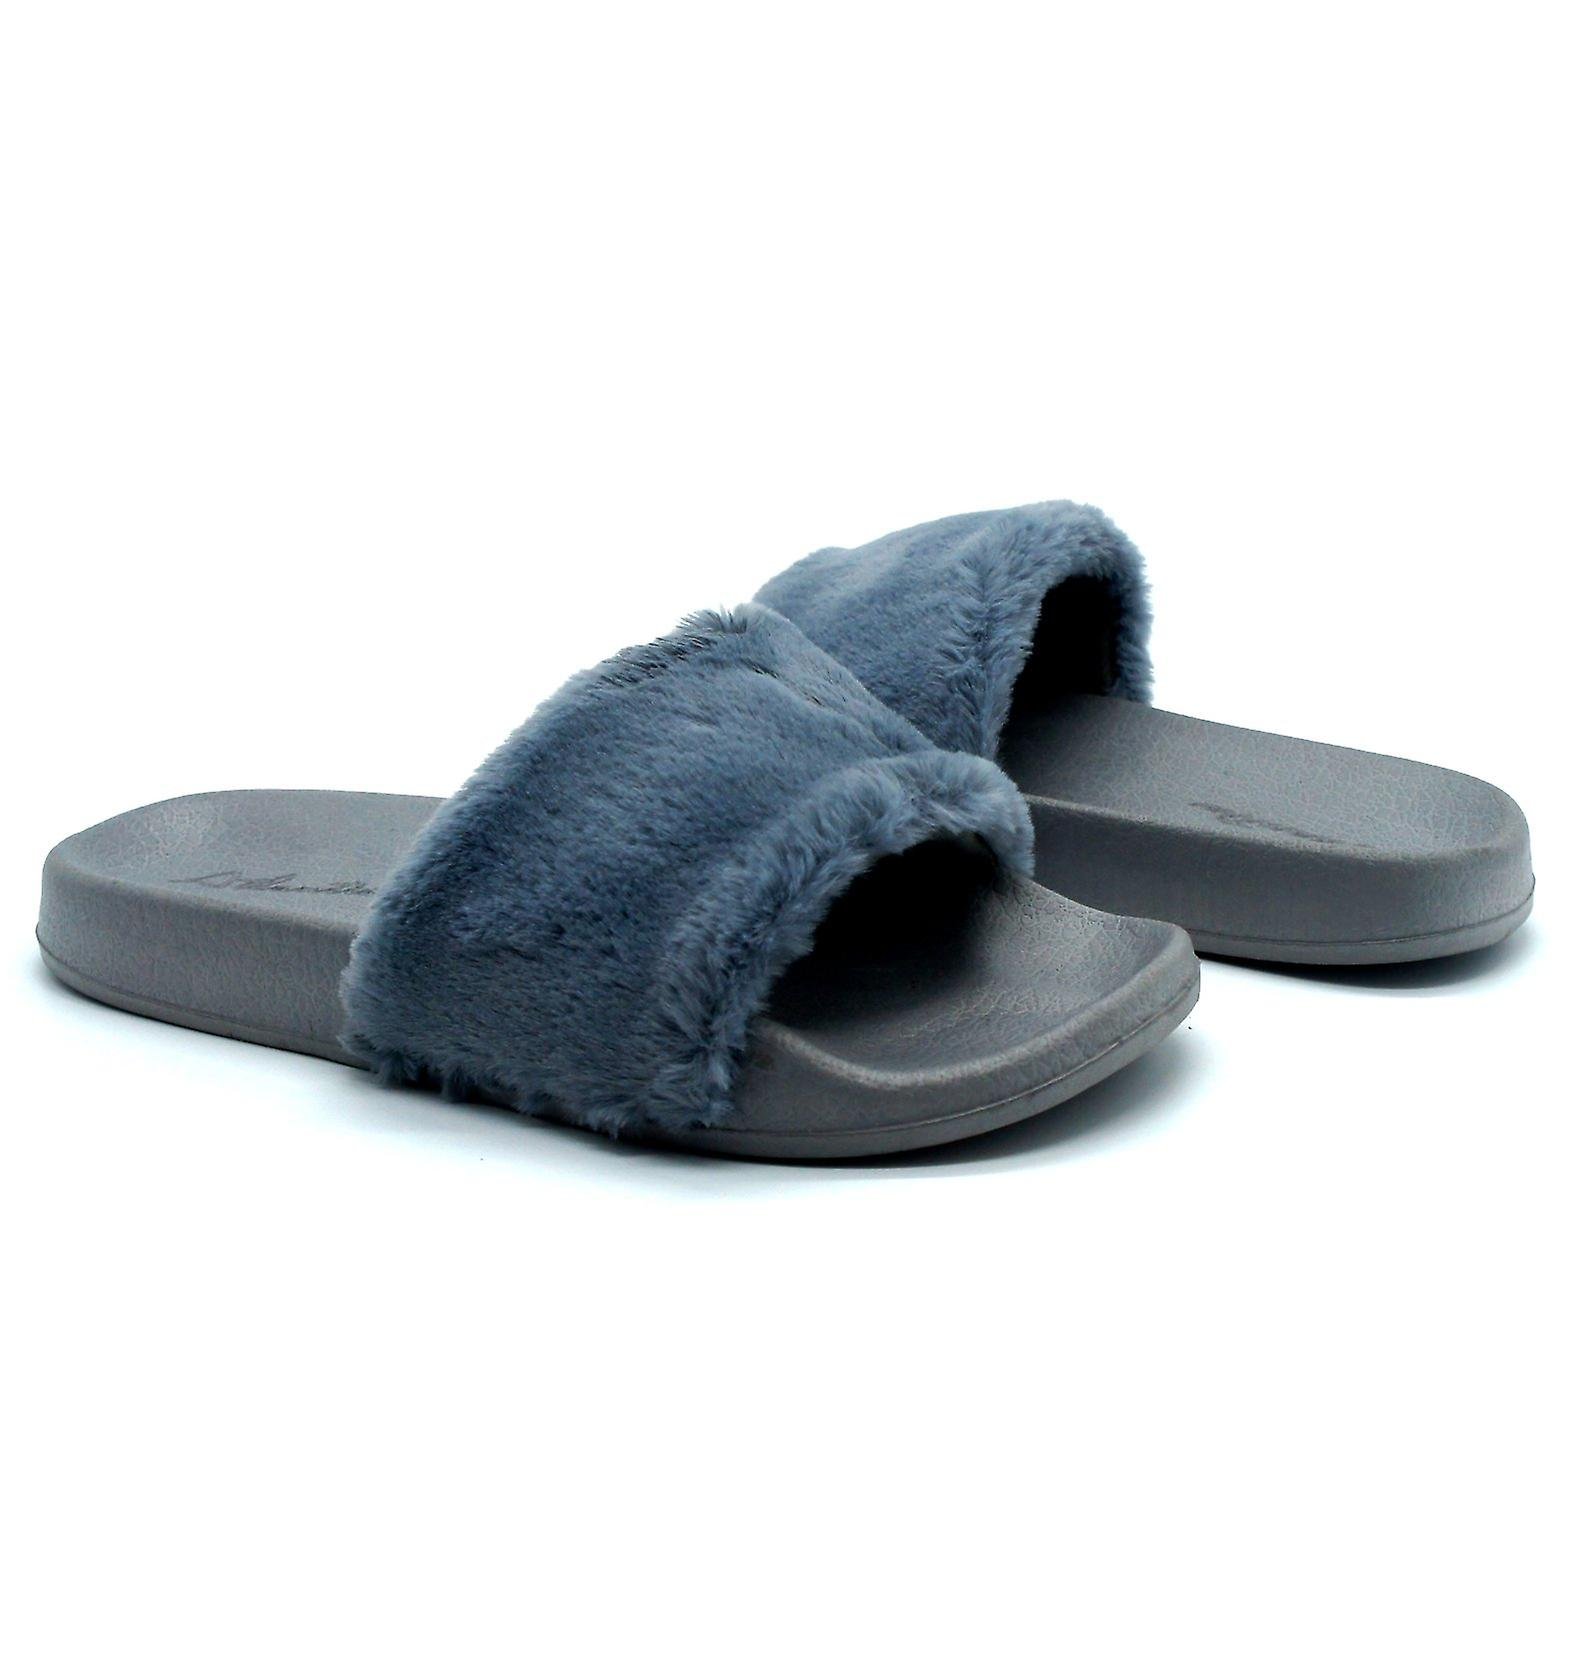 Atlantis Shoes Women Supportive Cushioned Comfortable Sandals Sliders Fluffy Grey